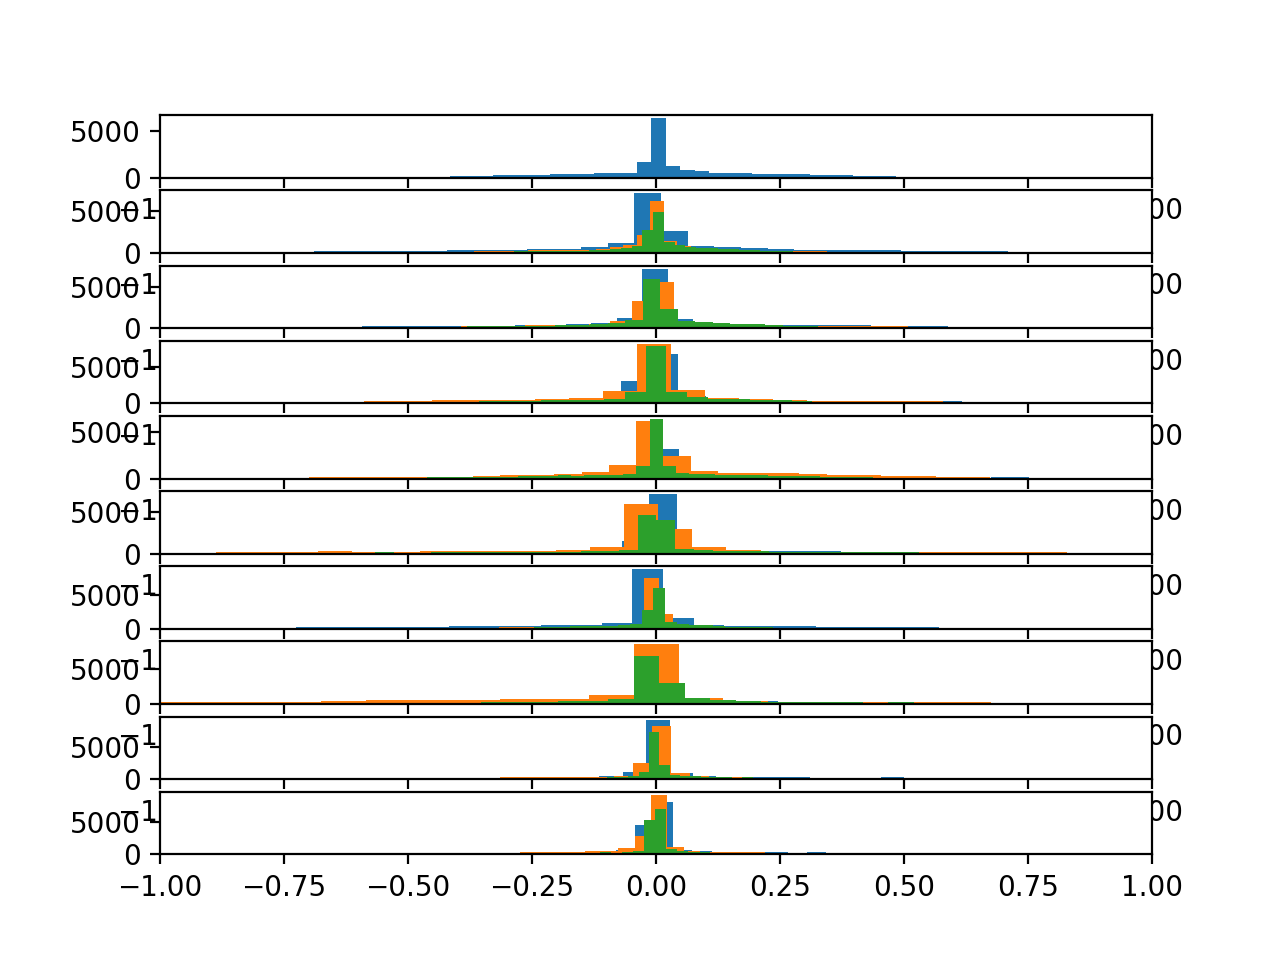 Histograms of the body gyroscope data for 10 subjects